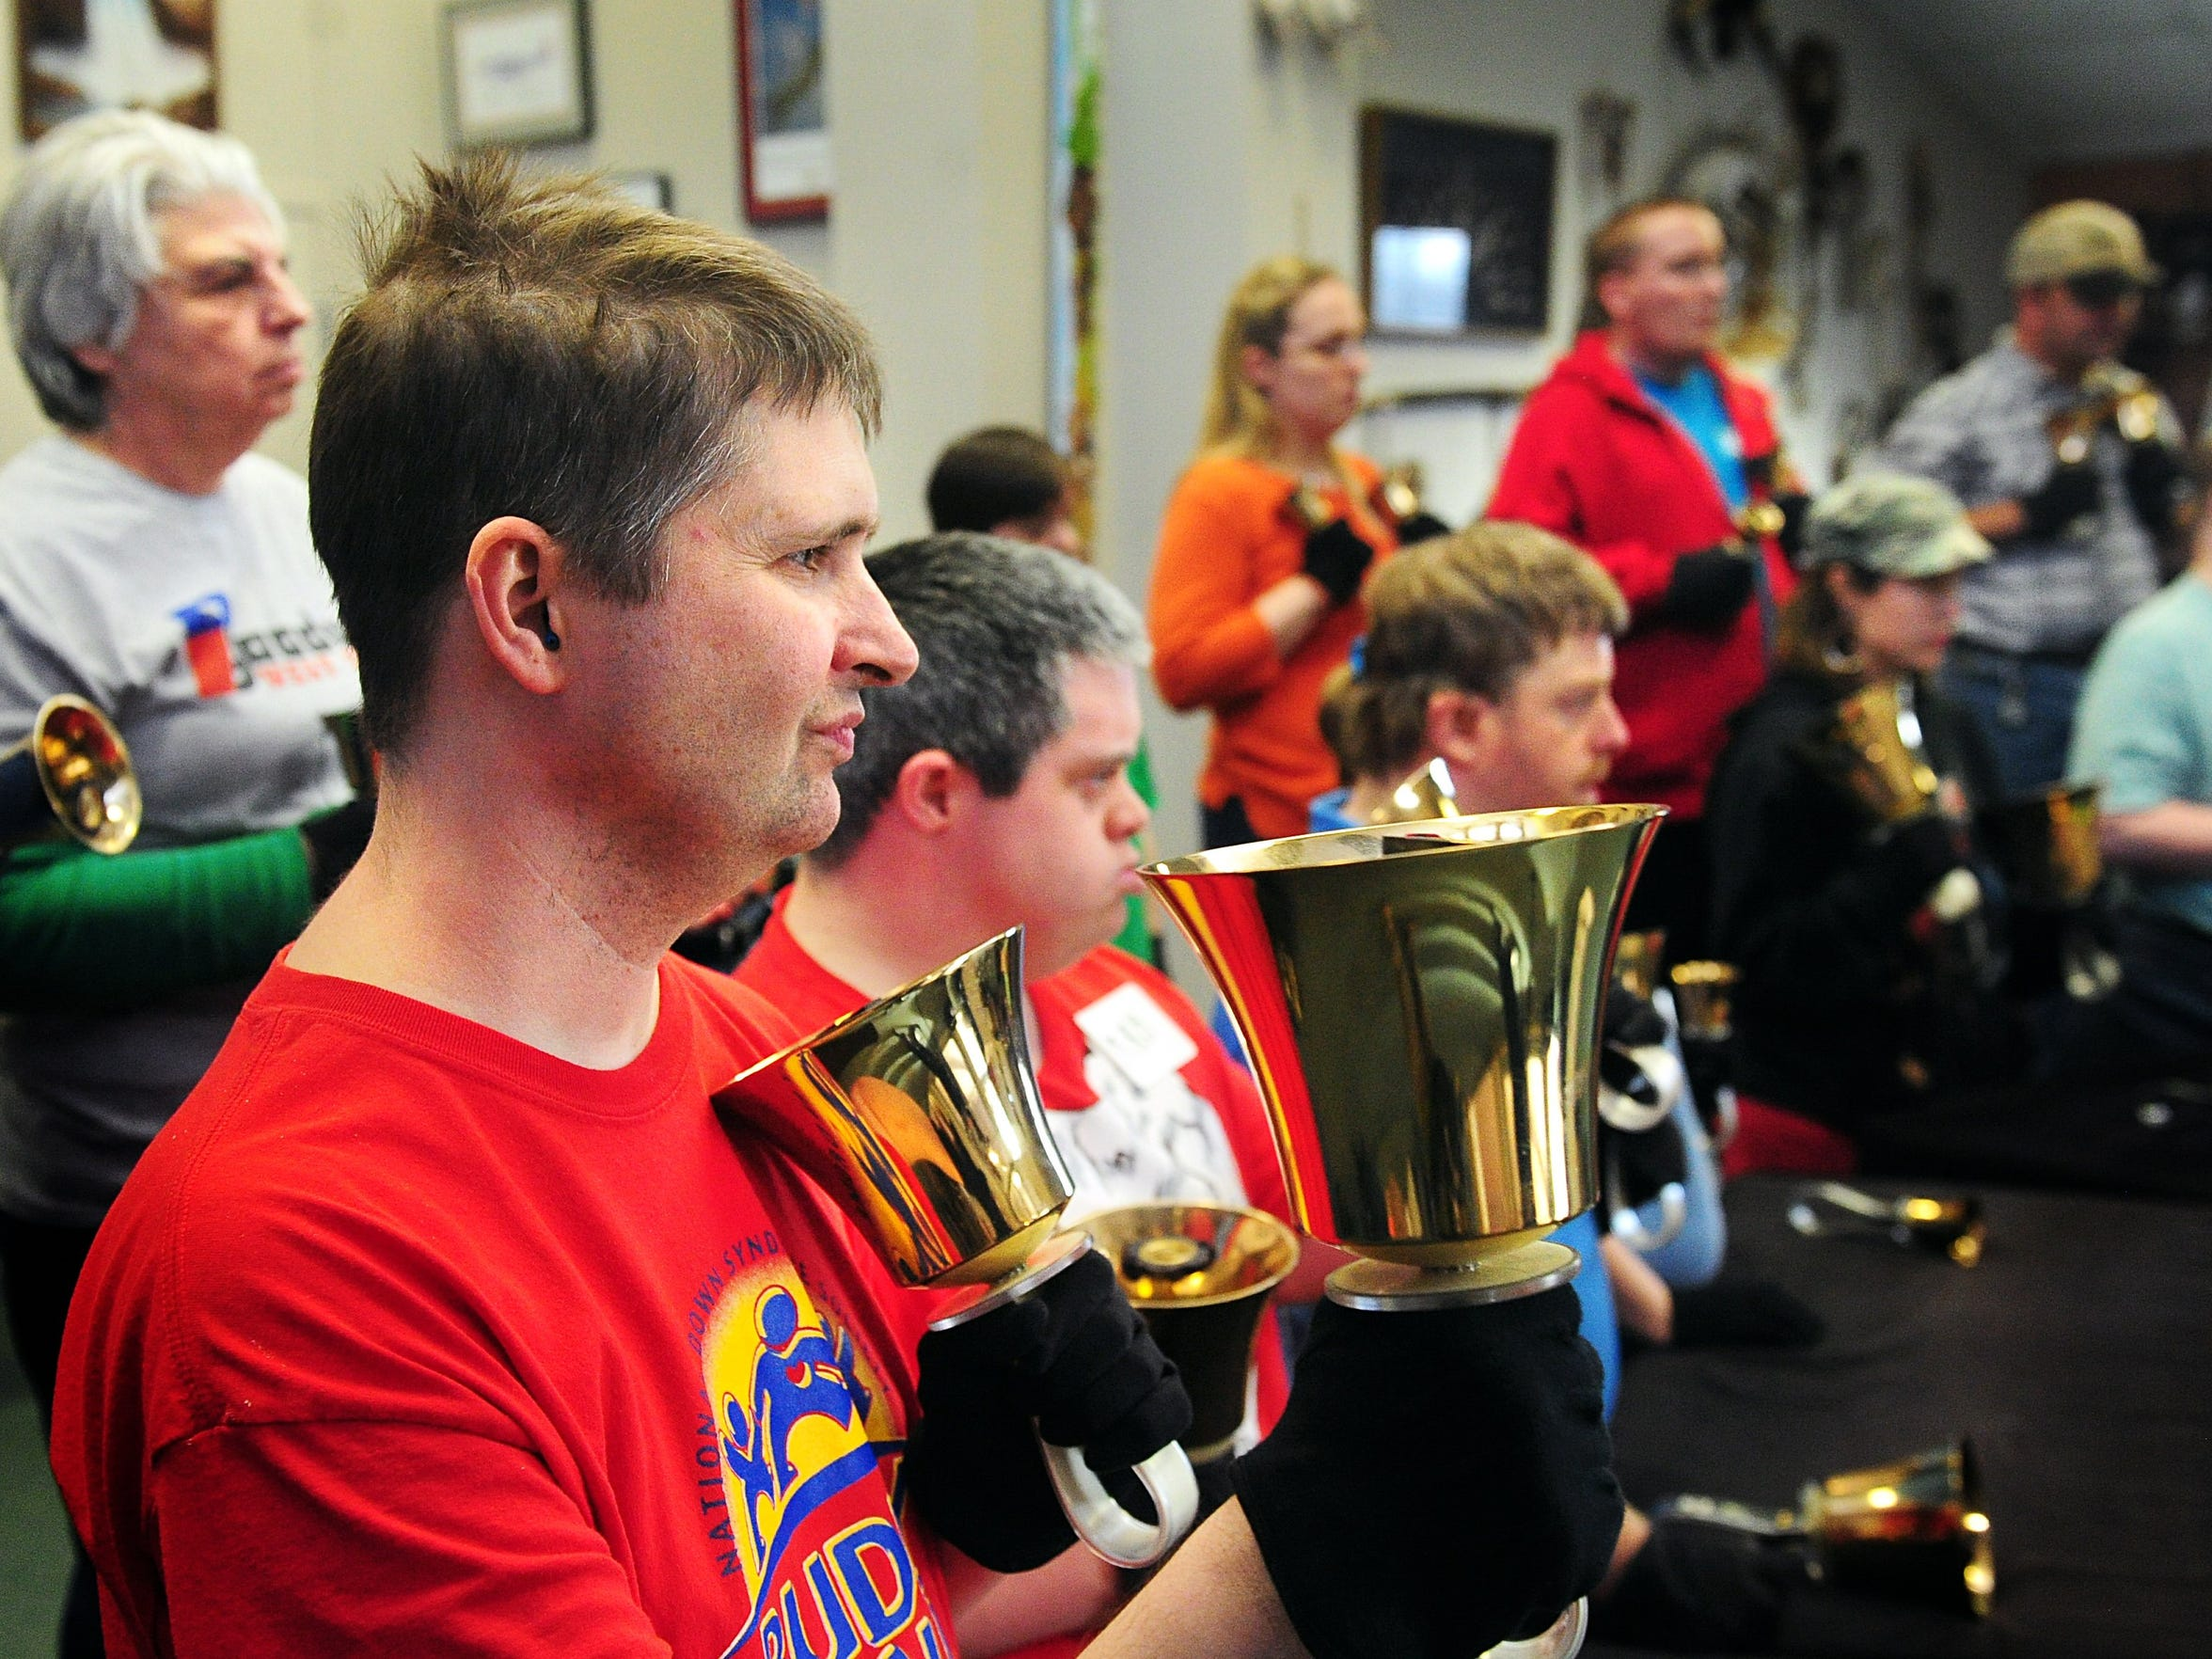 Bell Pepper Handbell Choir member Chris Shields, left, joins in to rehearse a song for the Disability Resources Inc. Big Country Christmas Concert in 2013 at Disability Resources Inc.